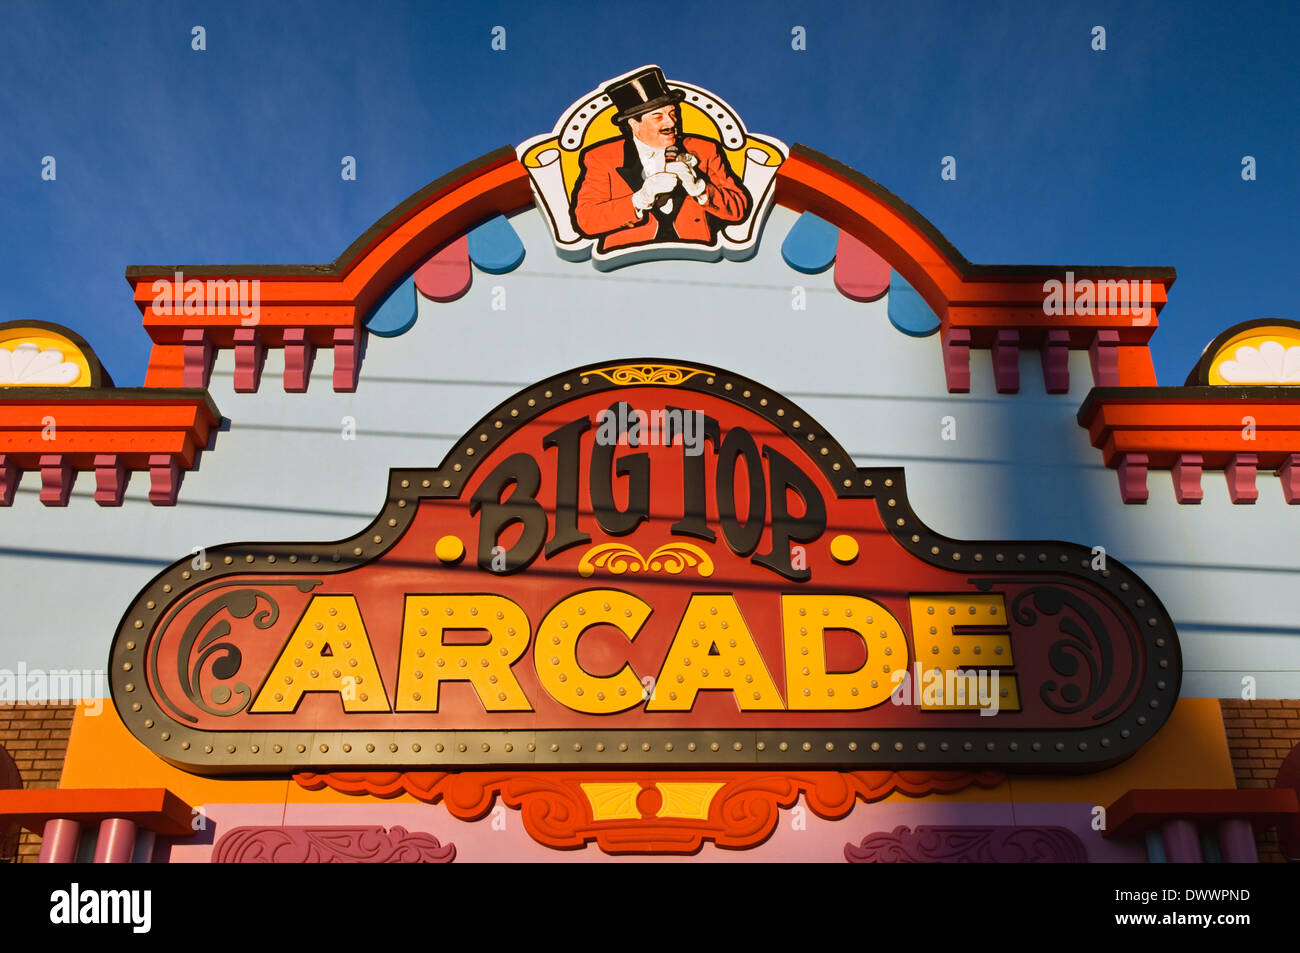 Facade of Big Top Arade in Pigeon Forge, Tennessee - Stock Image